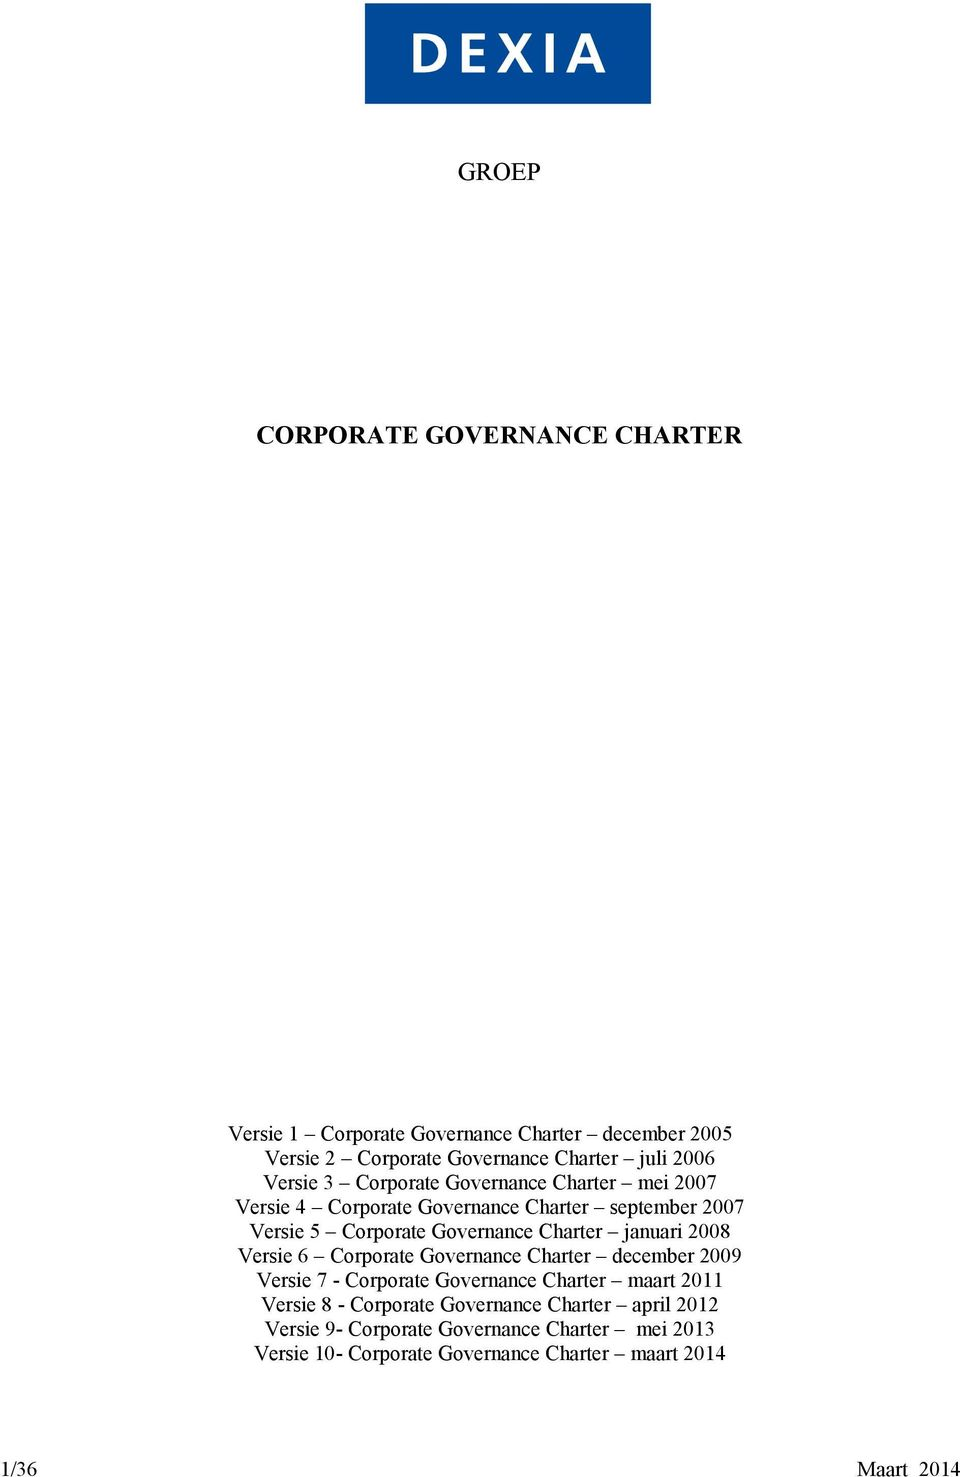 januari 2008 Versie 6 Corporate Governance Charter december 2009 Versie 7 - Corporate Governance Charter maart 2011 Versie 8 - Corporate